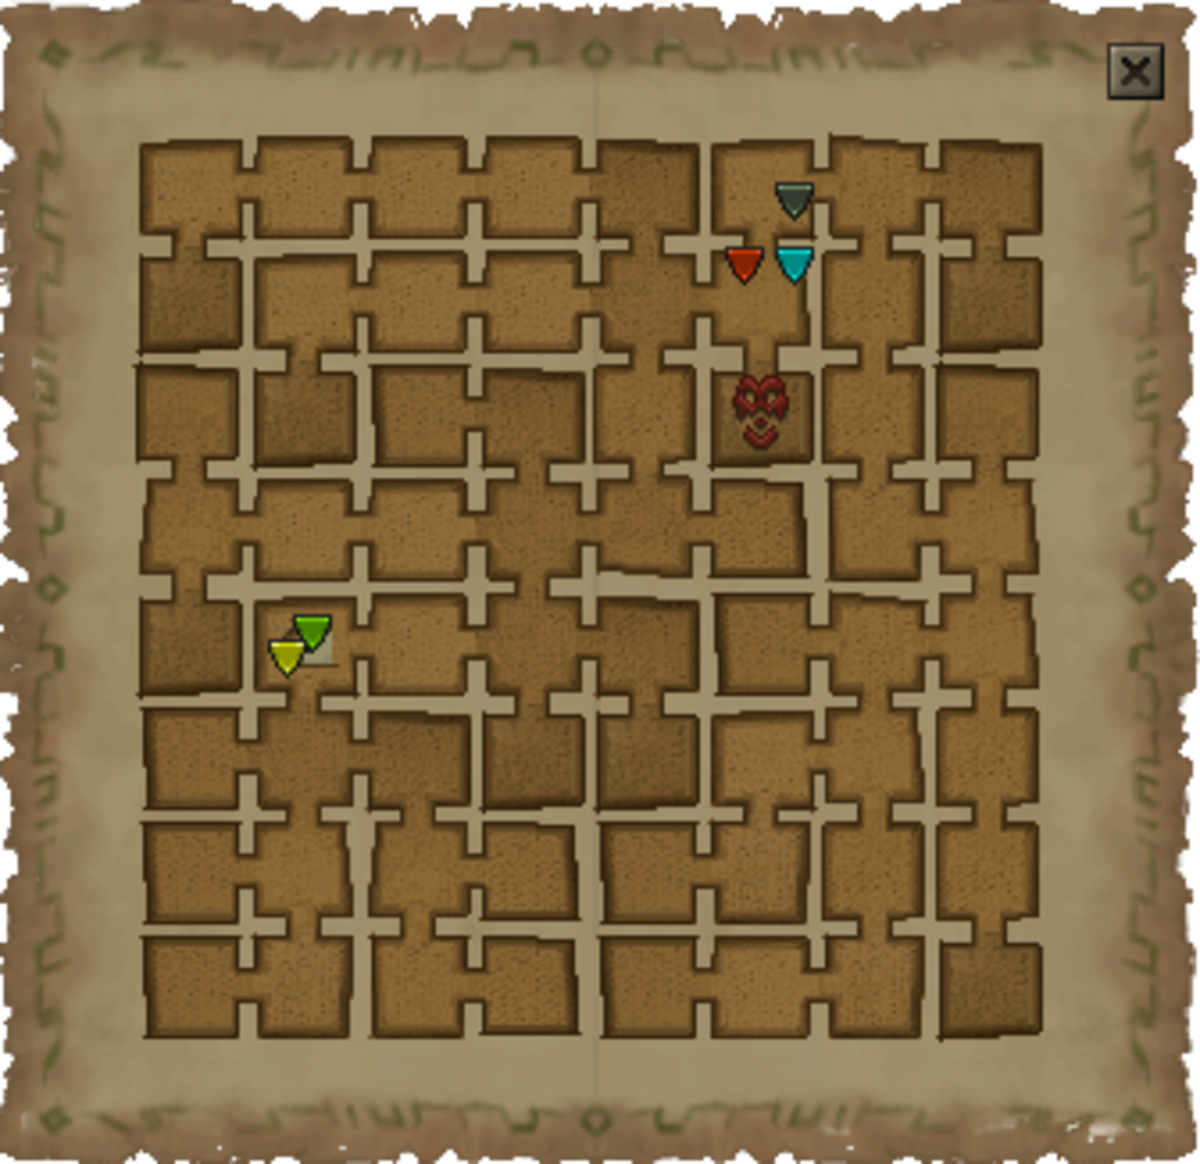 A Completely Filled Grid